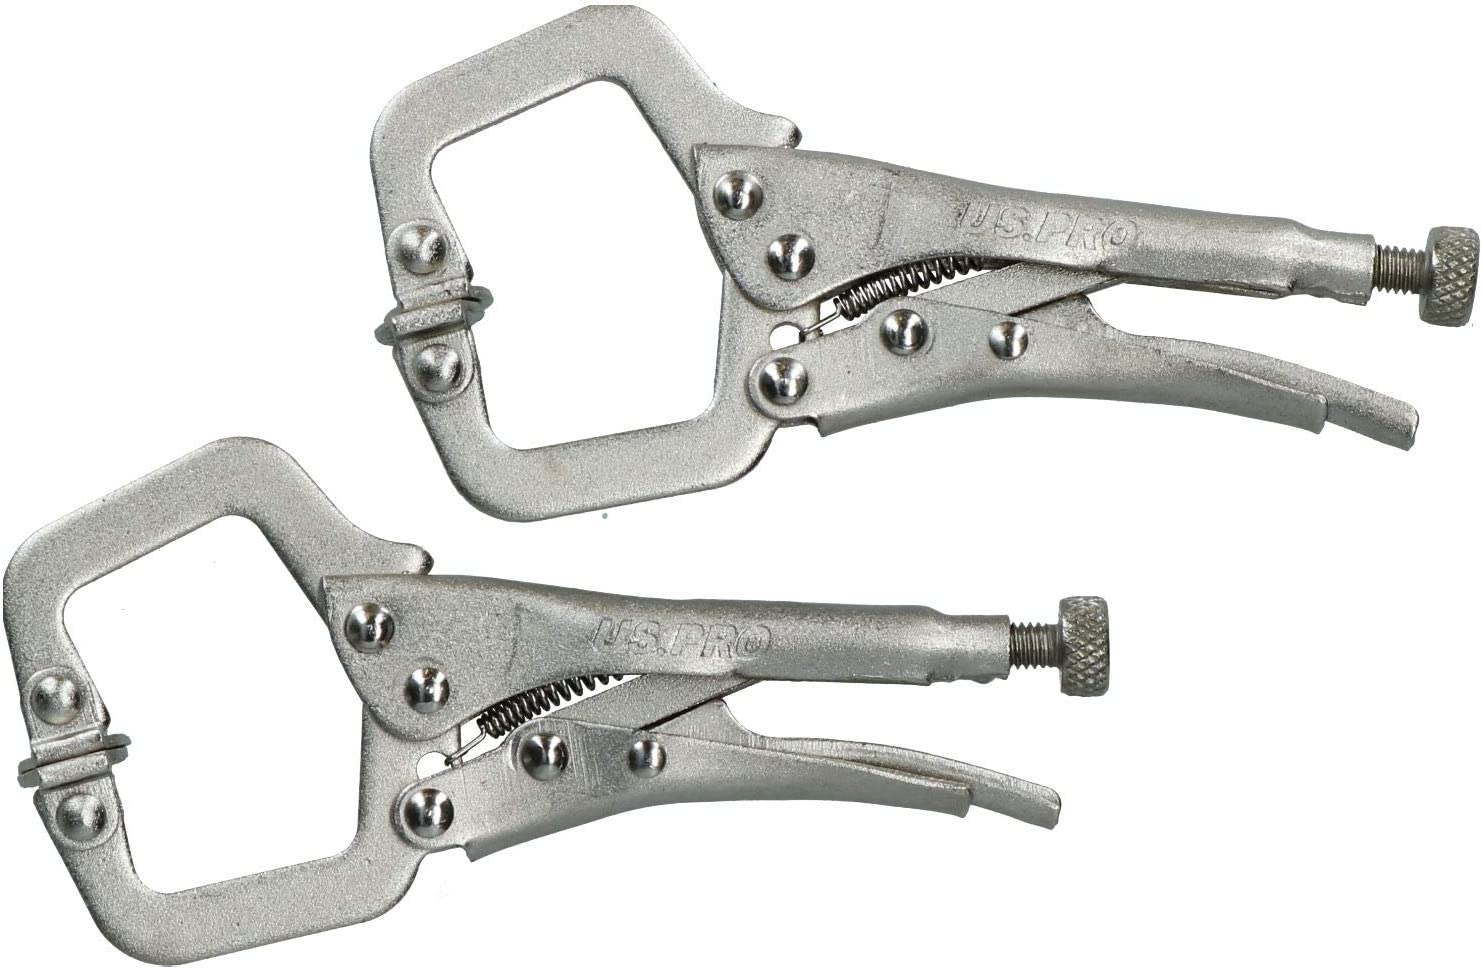 Mole Grip Wrench Set 3 Piece Mini Locking C Clamp Needle Nose Curved Pliers